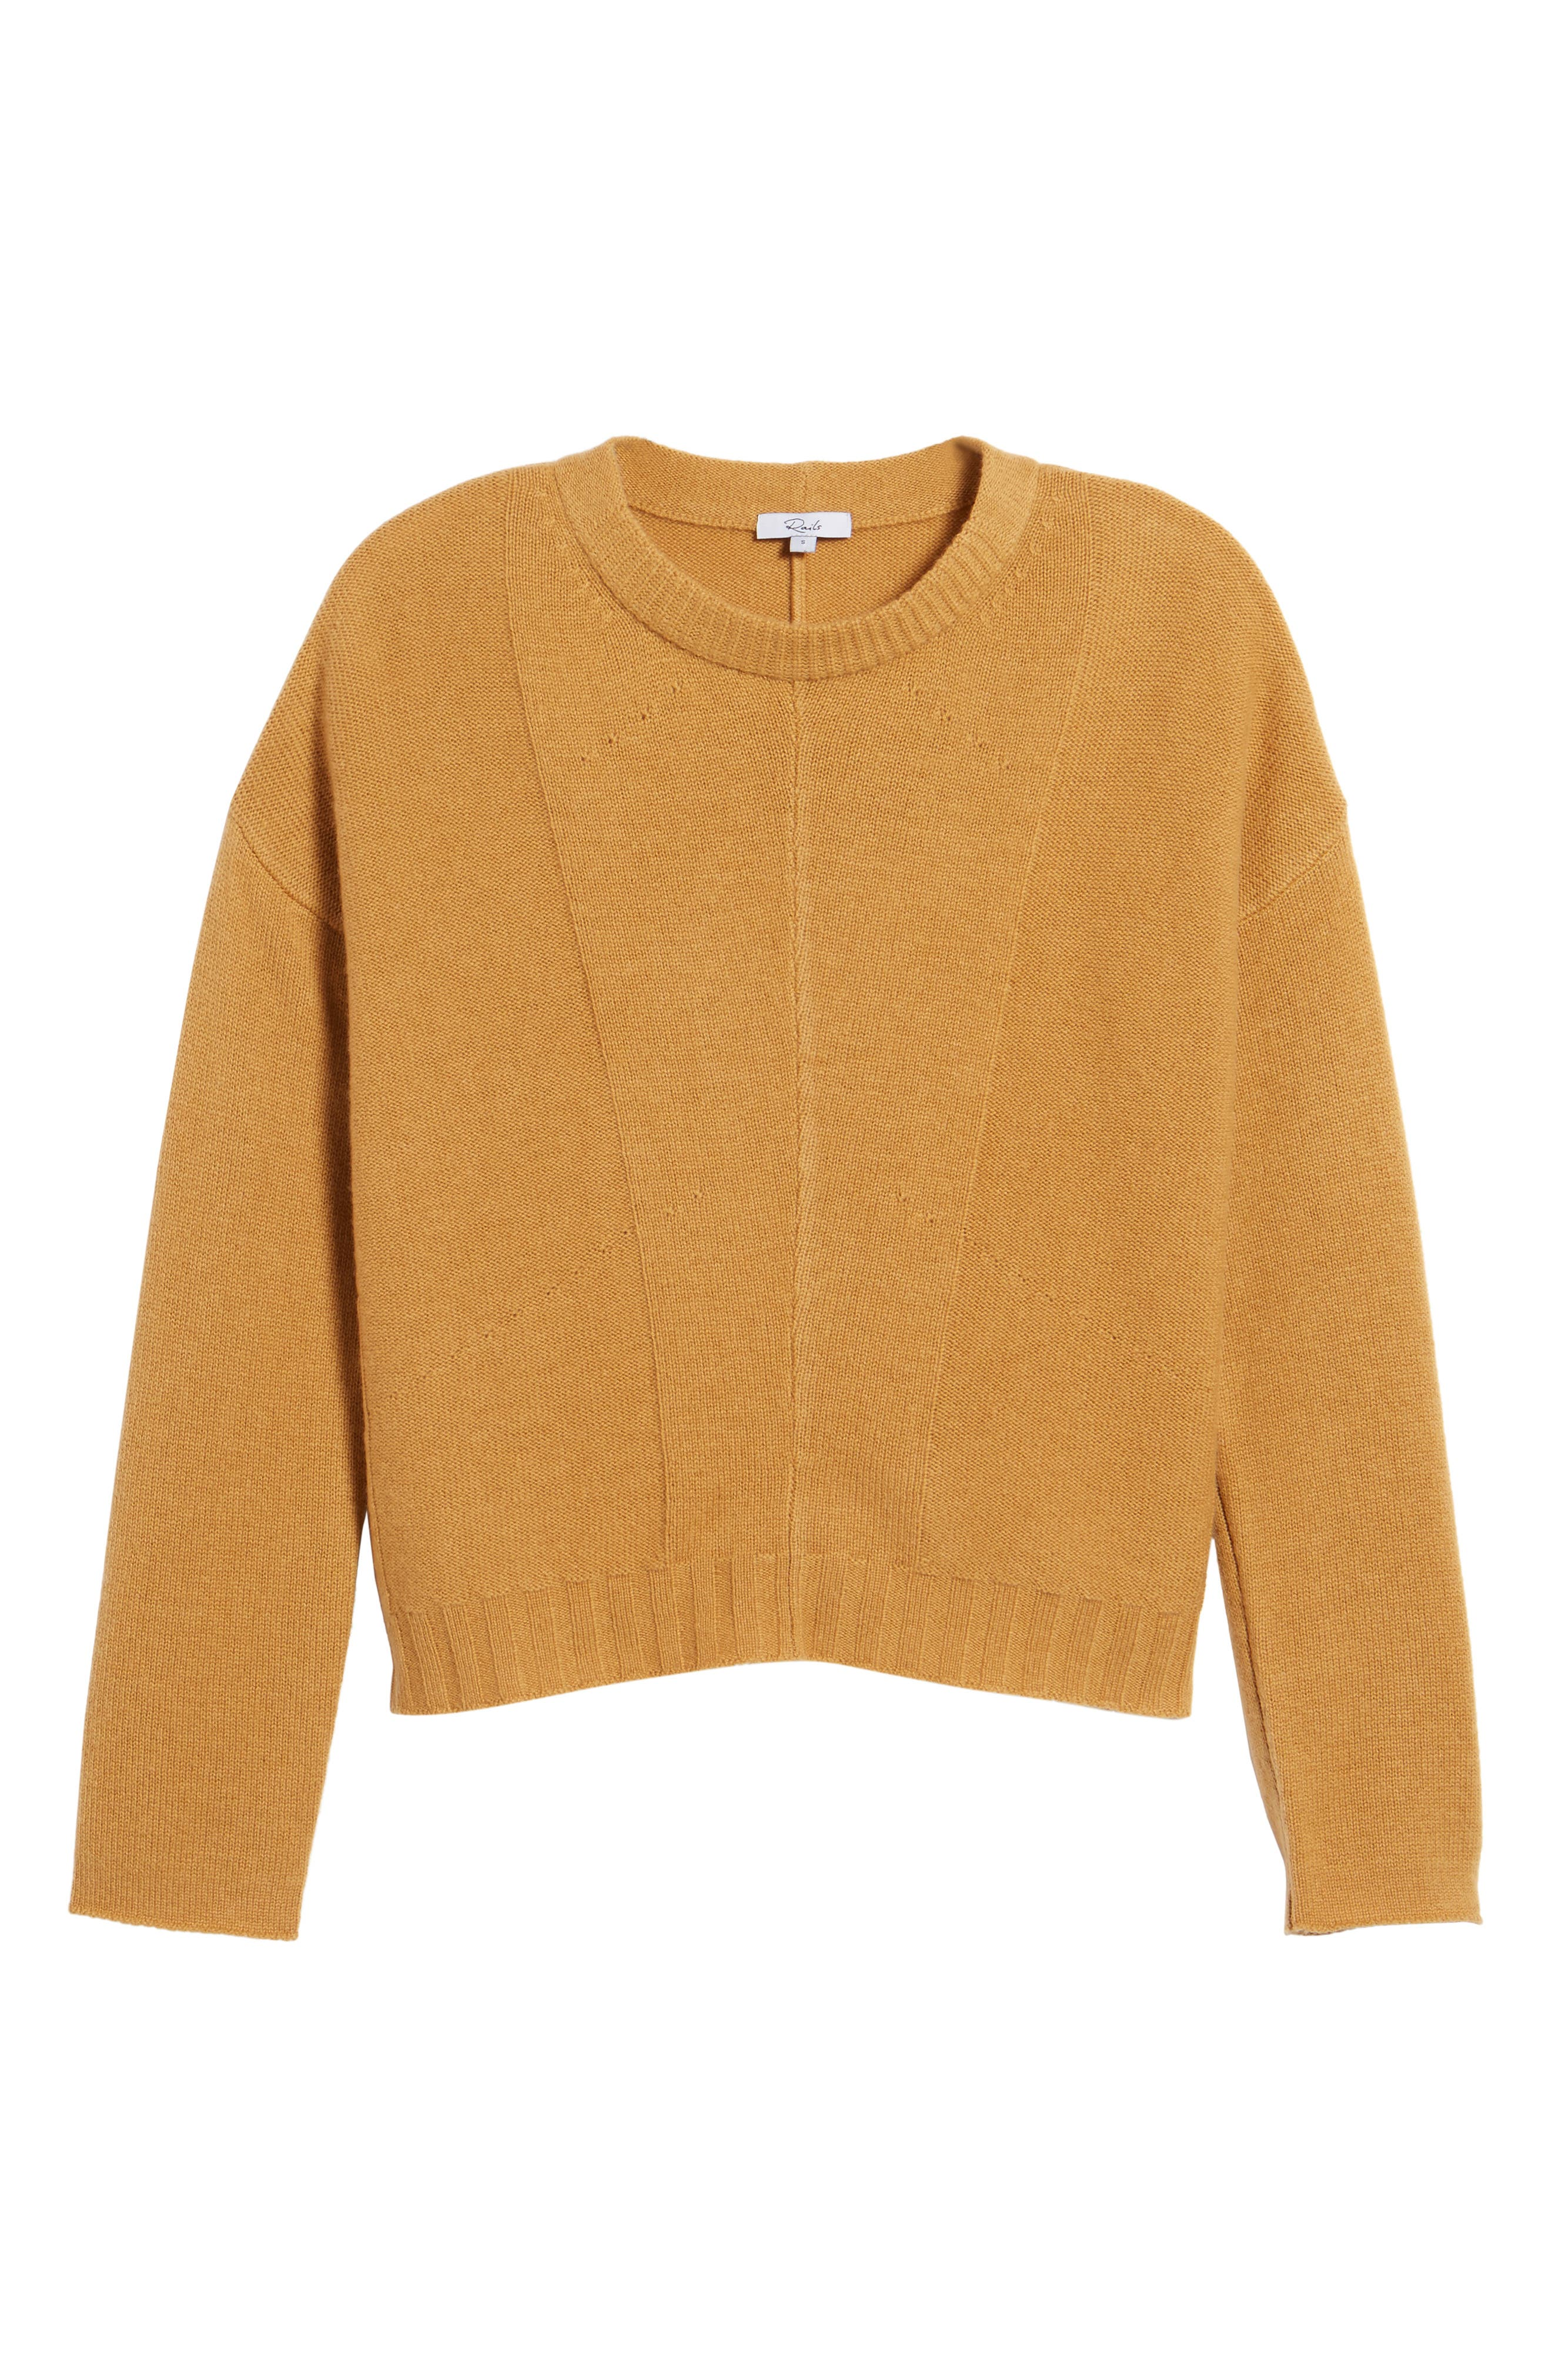 Joanna Wool & Cashmere Sweater,                             Alternate thumbnail 6, color,                             200